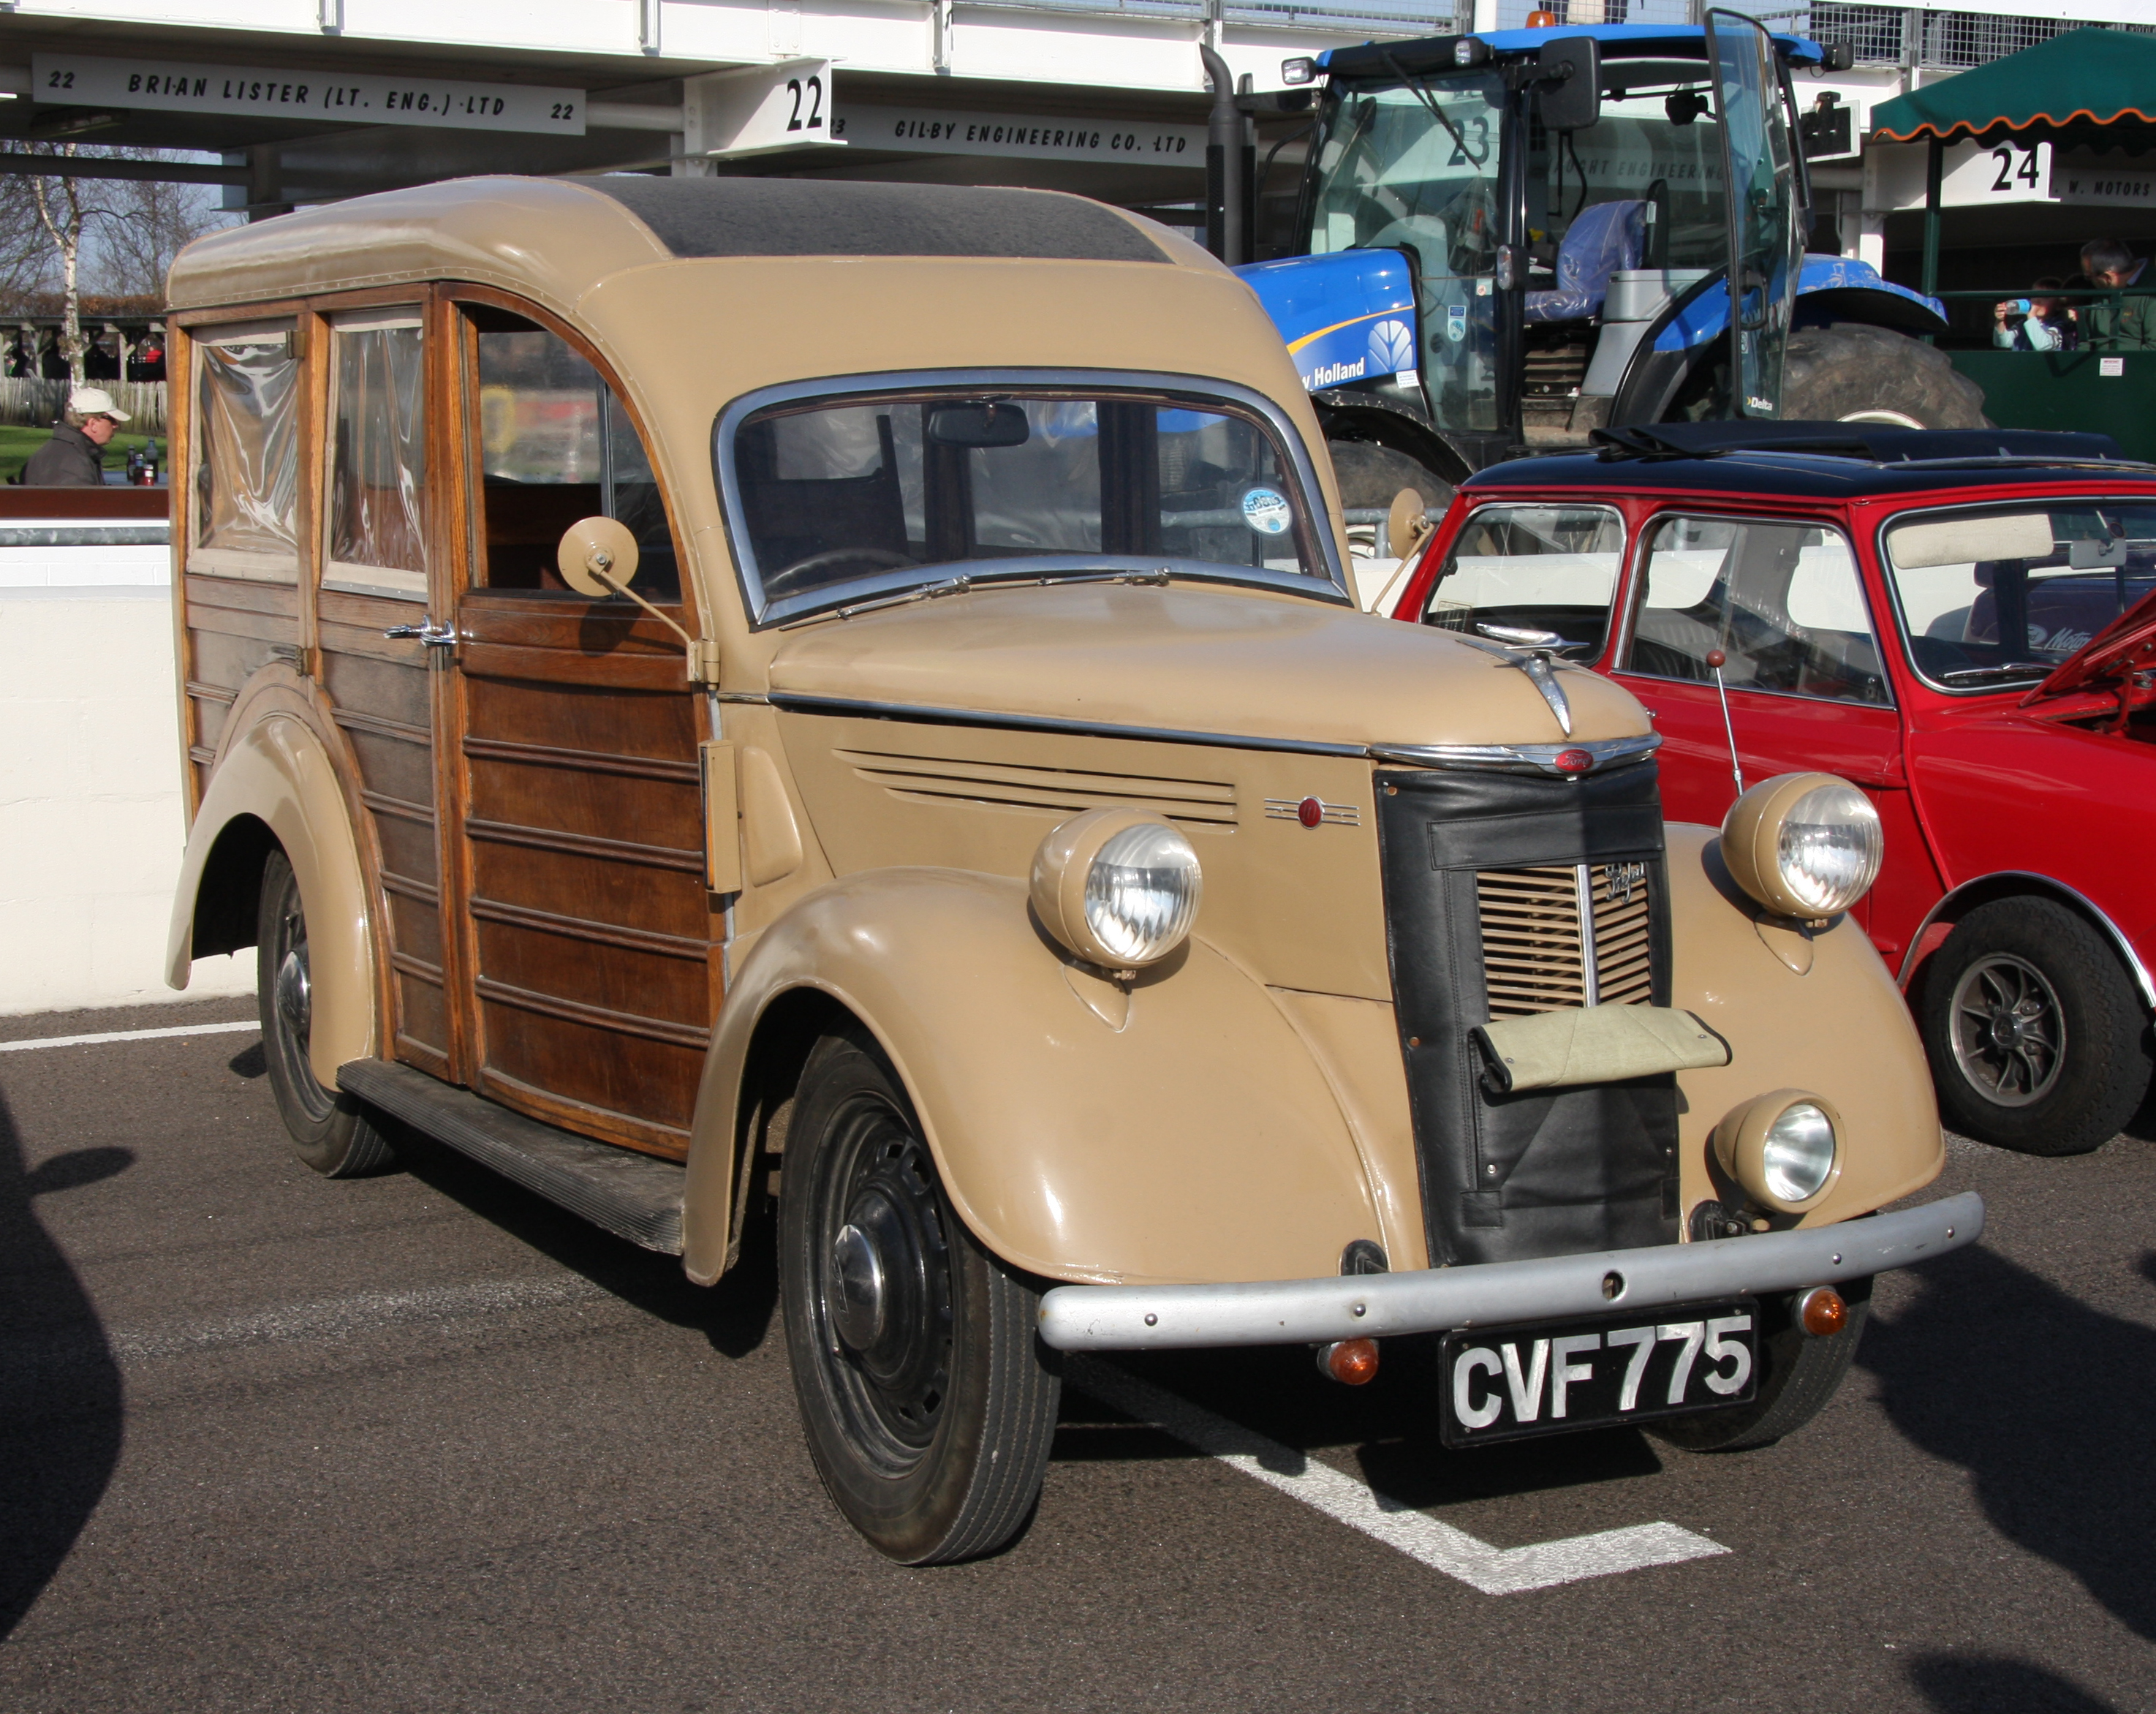 1930s ford woody 1937 ford deluxe station wagon 1940s nash ...